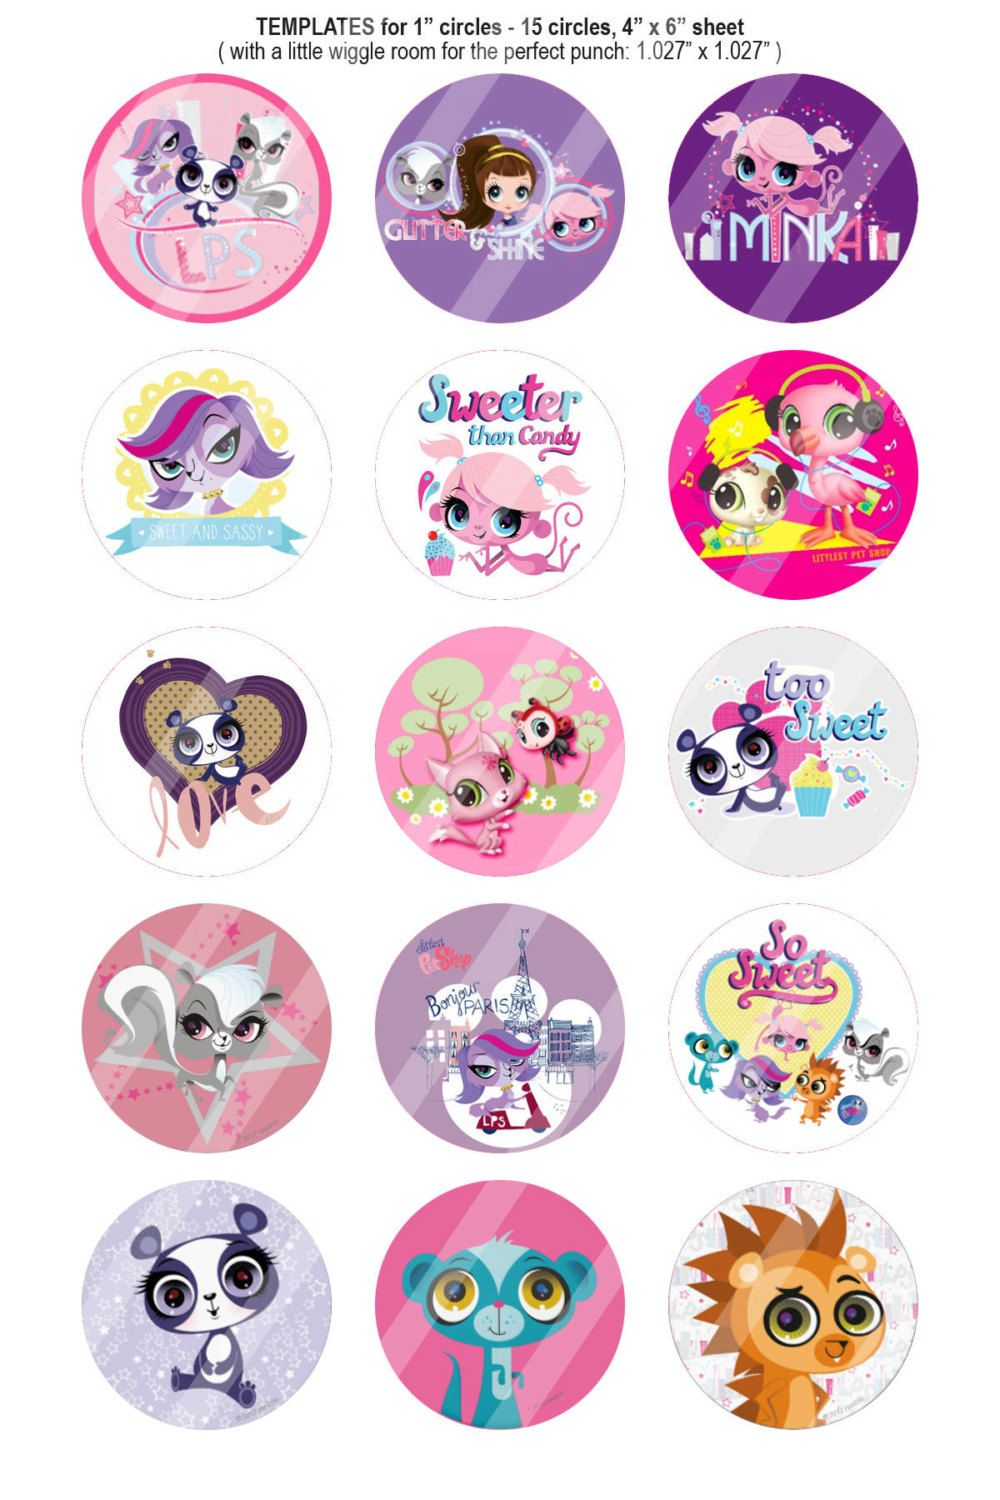 Littlest Pet Shop 1 Inch Bottle Cap Images 30 Images By BestofImages On Etsy